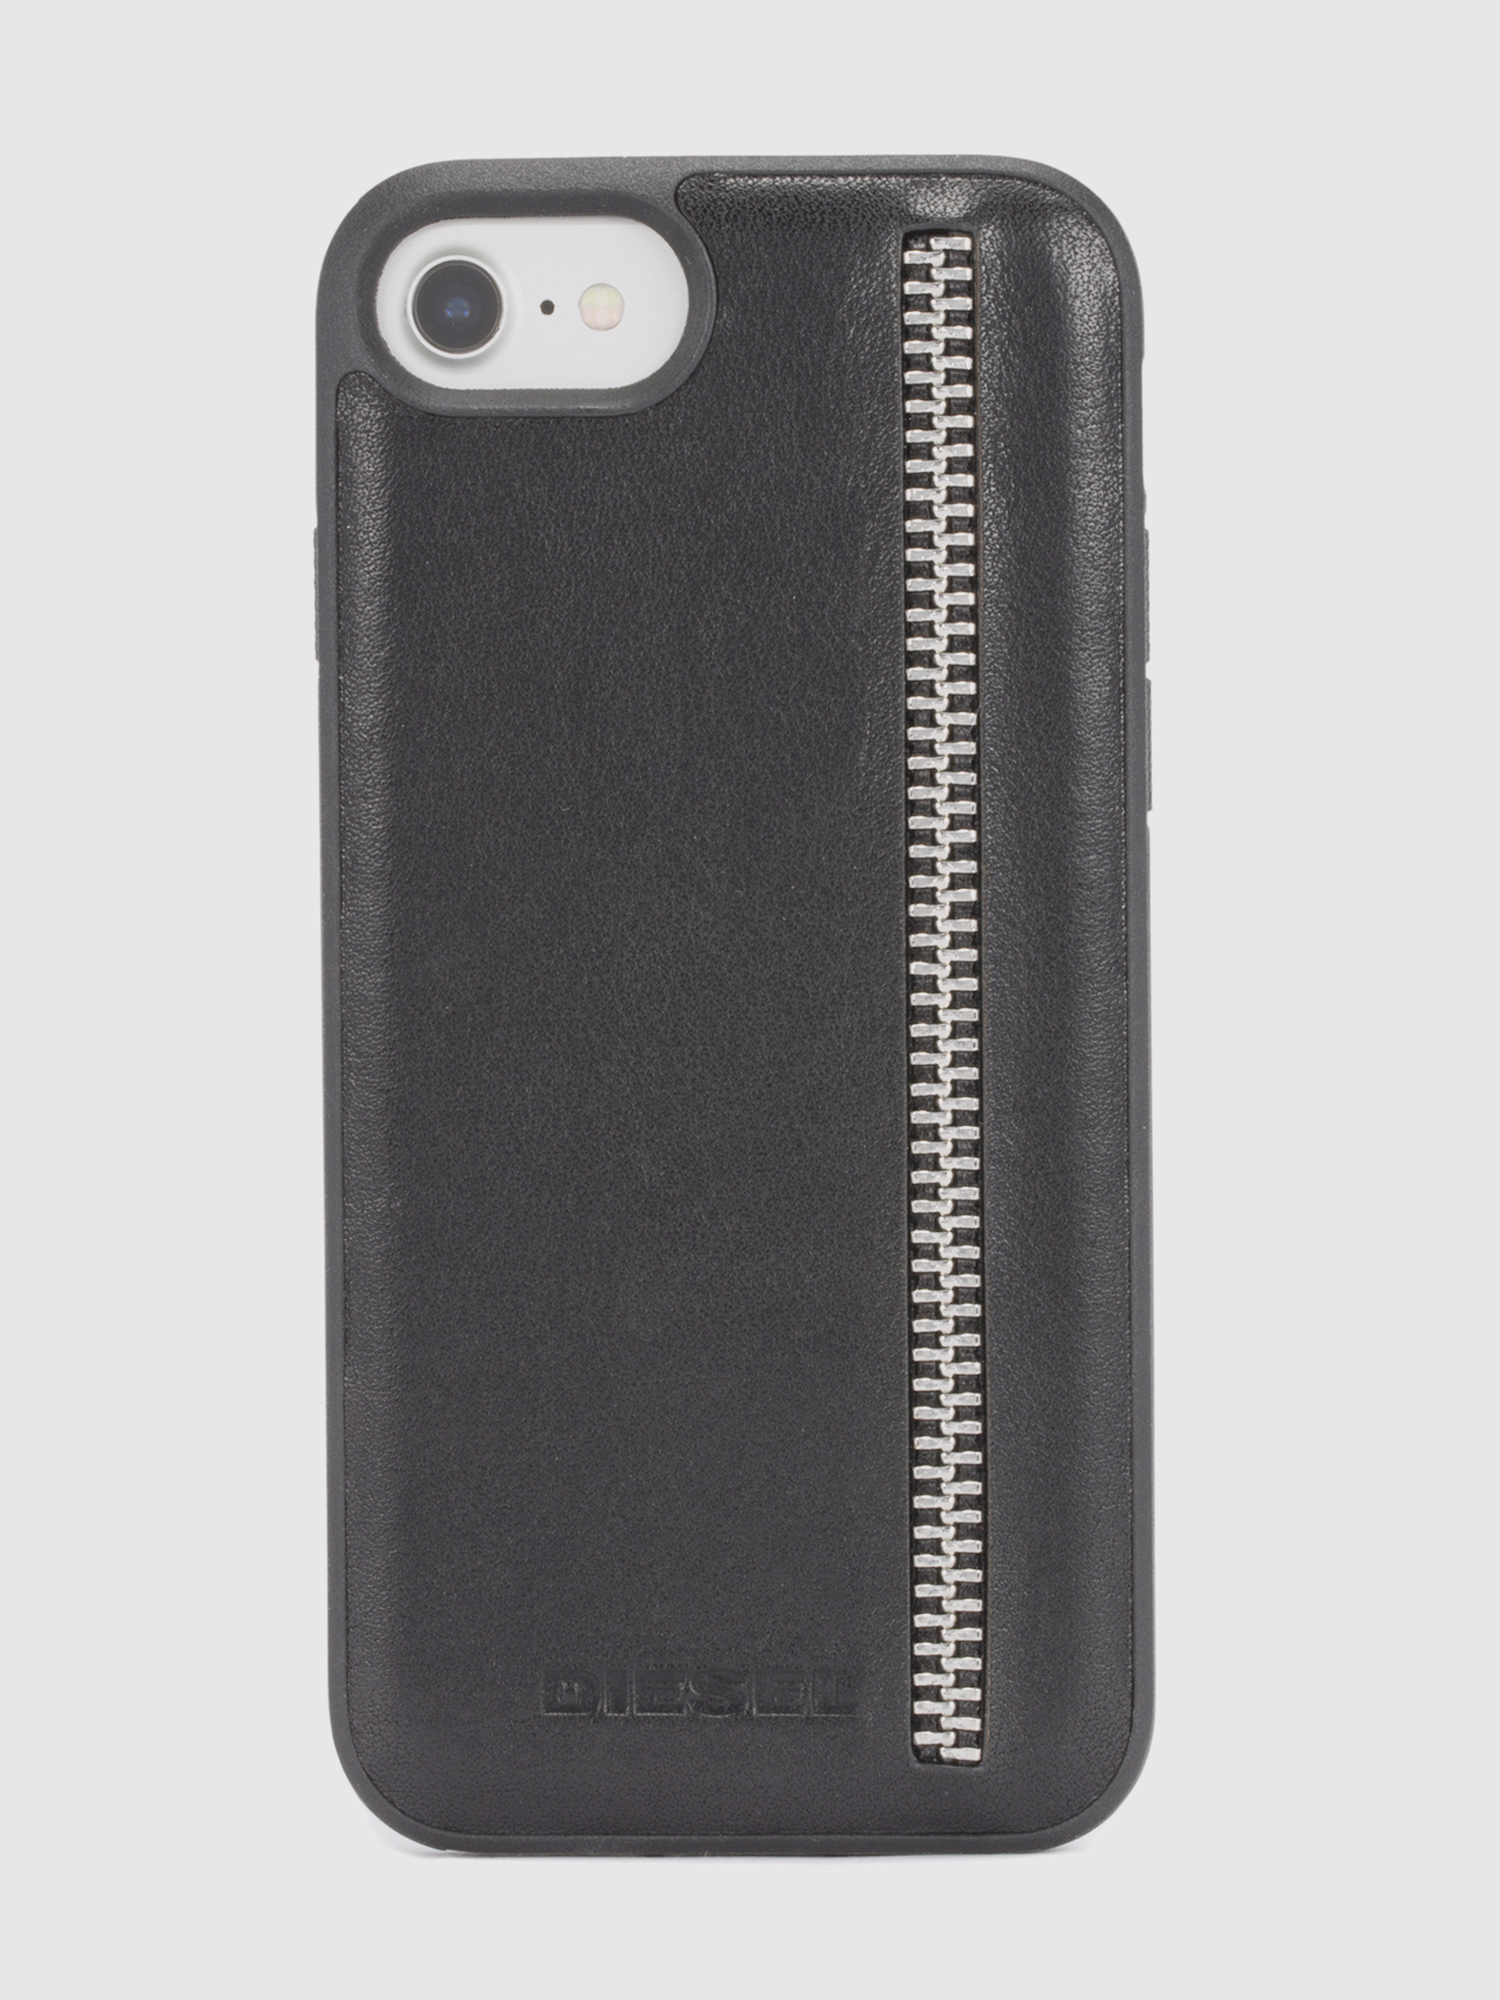 Diesel - ZIP BLACK LEATHER IPHONE 8/7/6s/6 CASE,  - Coques - Image 2